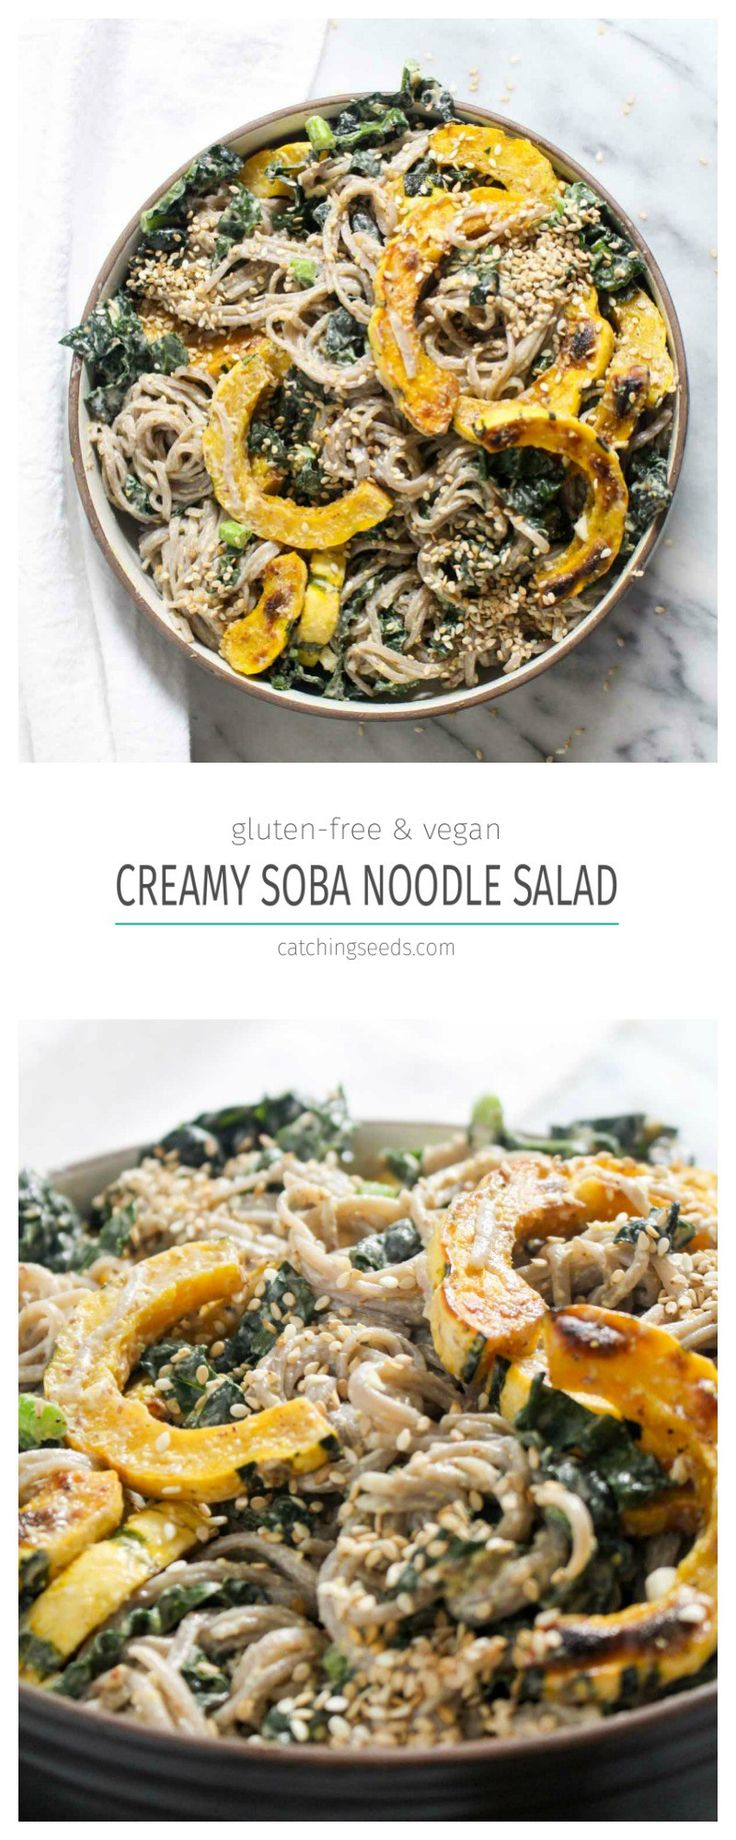 This healthy 9 ingredient Soba Noodle Salad recipe is coated in a creamy and nutty tahini dressing and studded with caramelized winter squash and fresh kale. This gluten-free and vegan meal is equally perfect for lunch or dinner.   CatchingSeeds.com